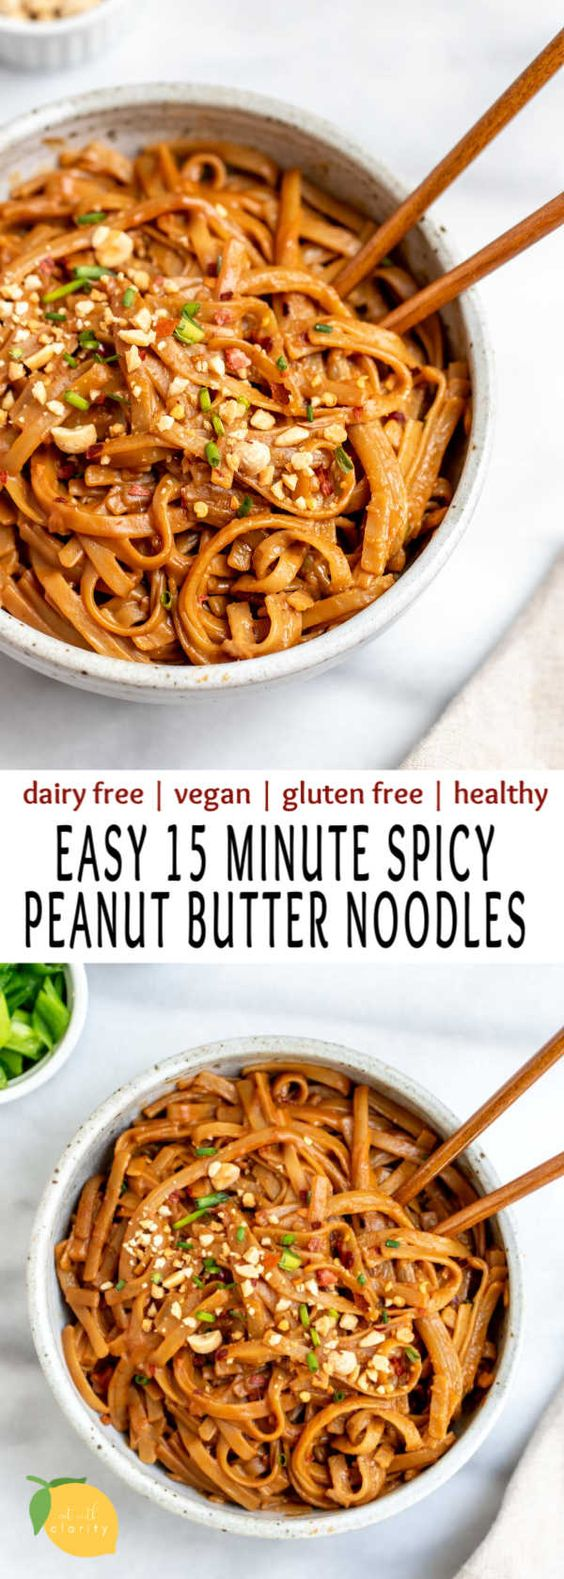 15 Minute Spicy Peanut Noodles